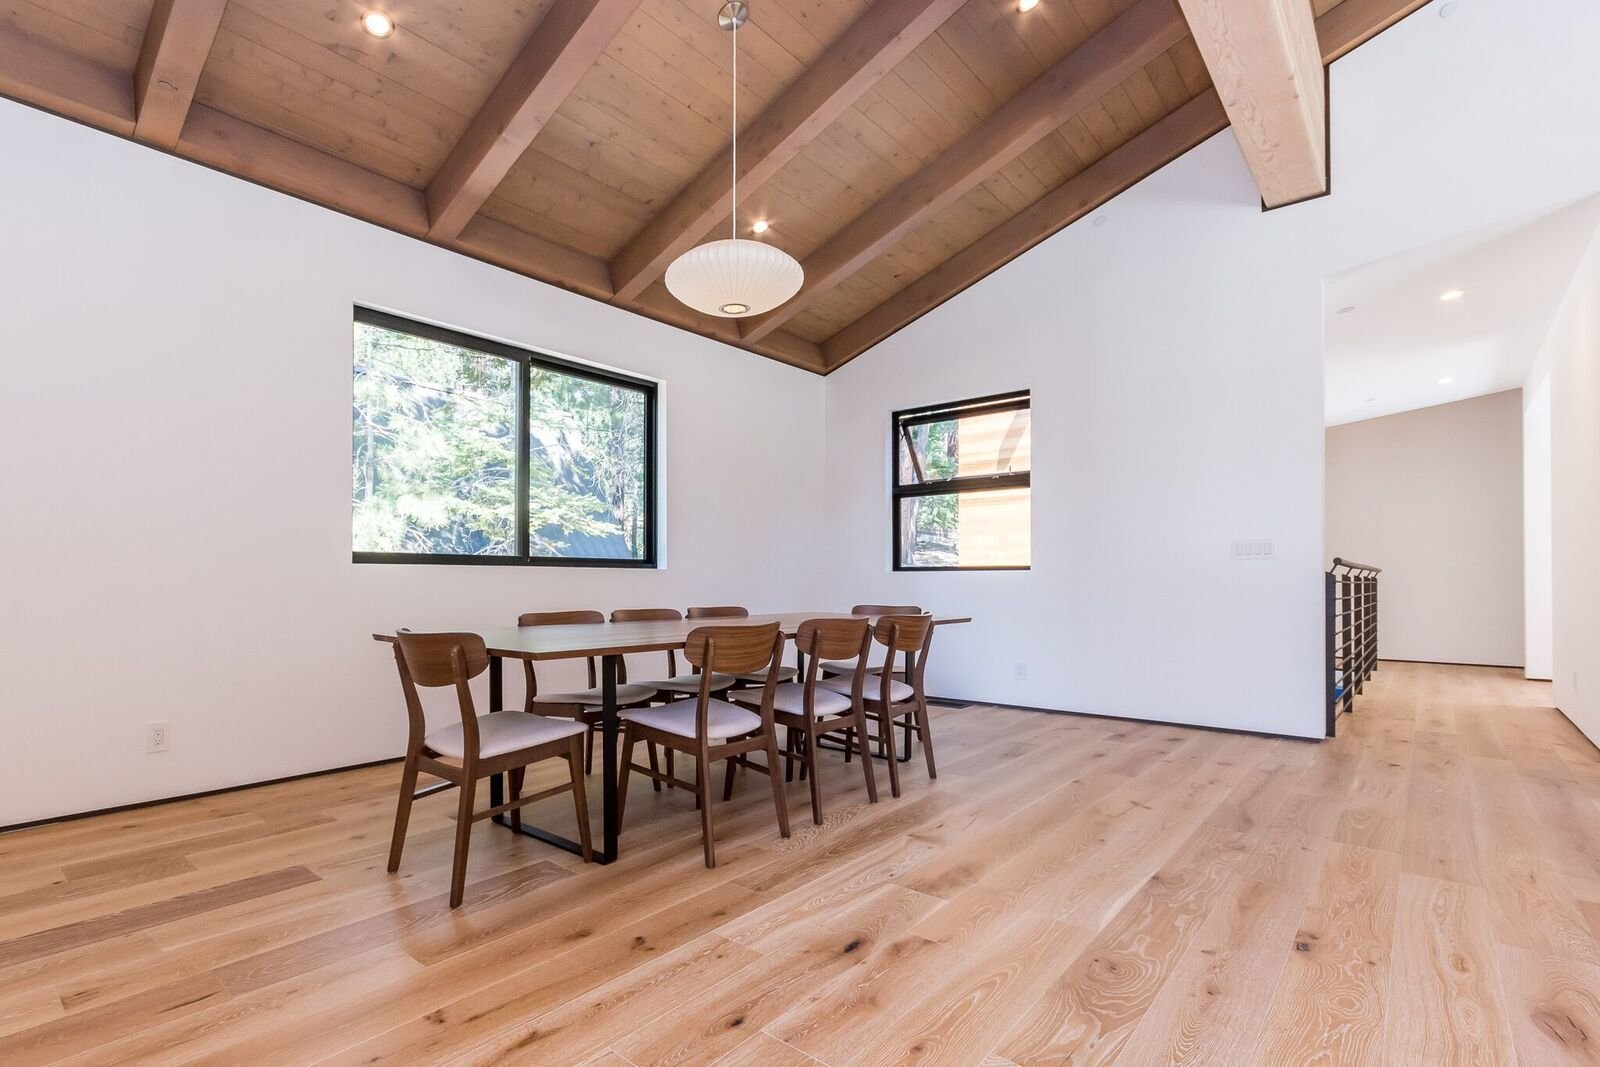 Dining Room, Table, Chair, Medium Hardwood Floor, Standard Layout Fireplace, Ceiling Lighting, and Pendant Lighting A big enough dining space that can serve as a flex area with added seating or lounging.   Mammoth Modern House 1